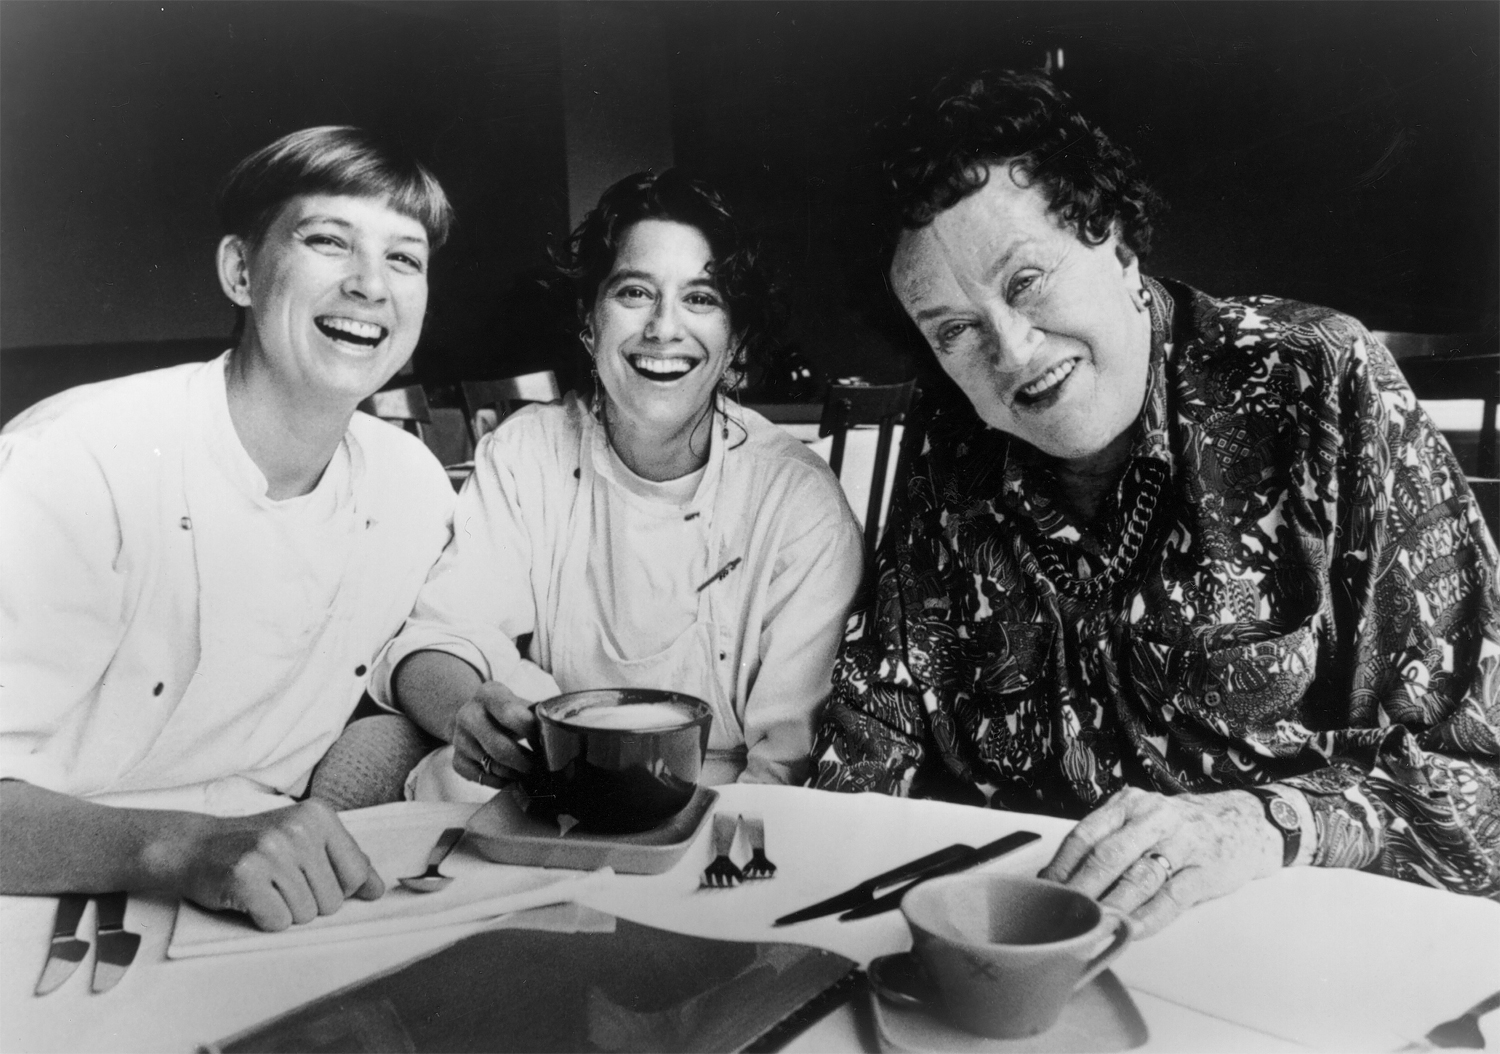 Three women sit around a table in a black and white photo. Two of them are dressed in white chef jackets and one of them is Julia Child